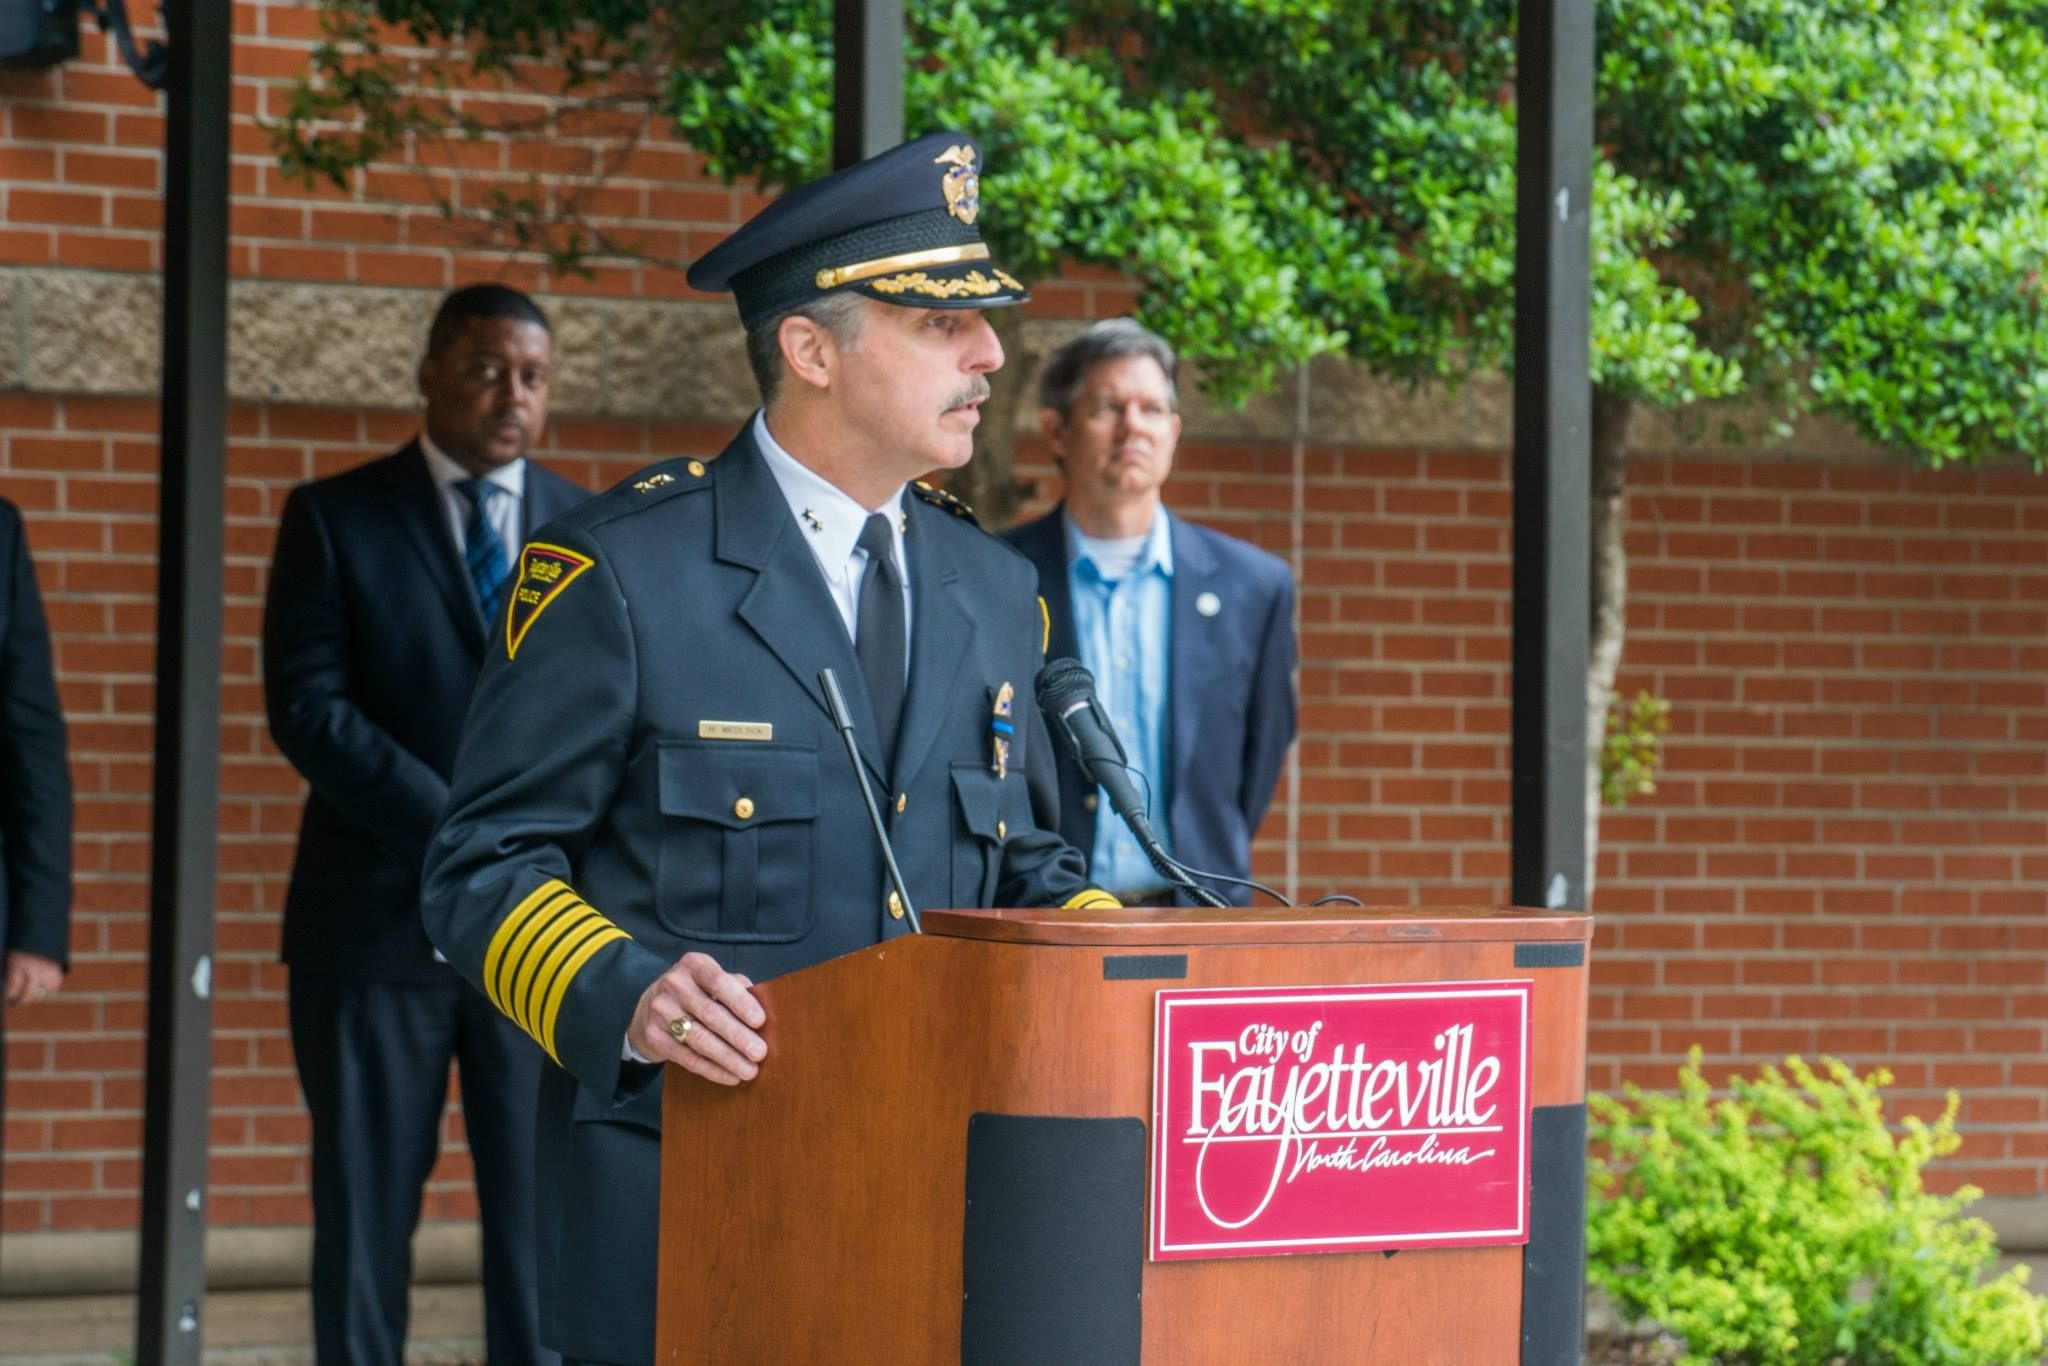 During The 2015 Fallen Officer Remembrance Ceremony Policechiefharoldmedlock And The Fayettevillepol Police Chief Fallen Officer Police Department